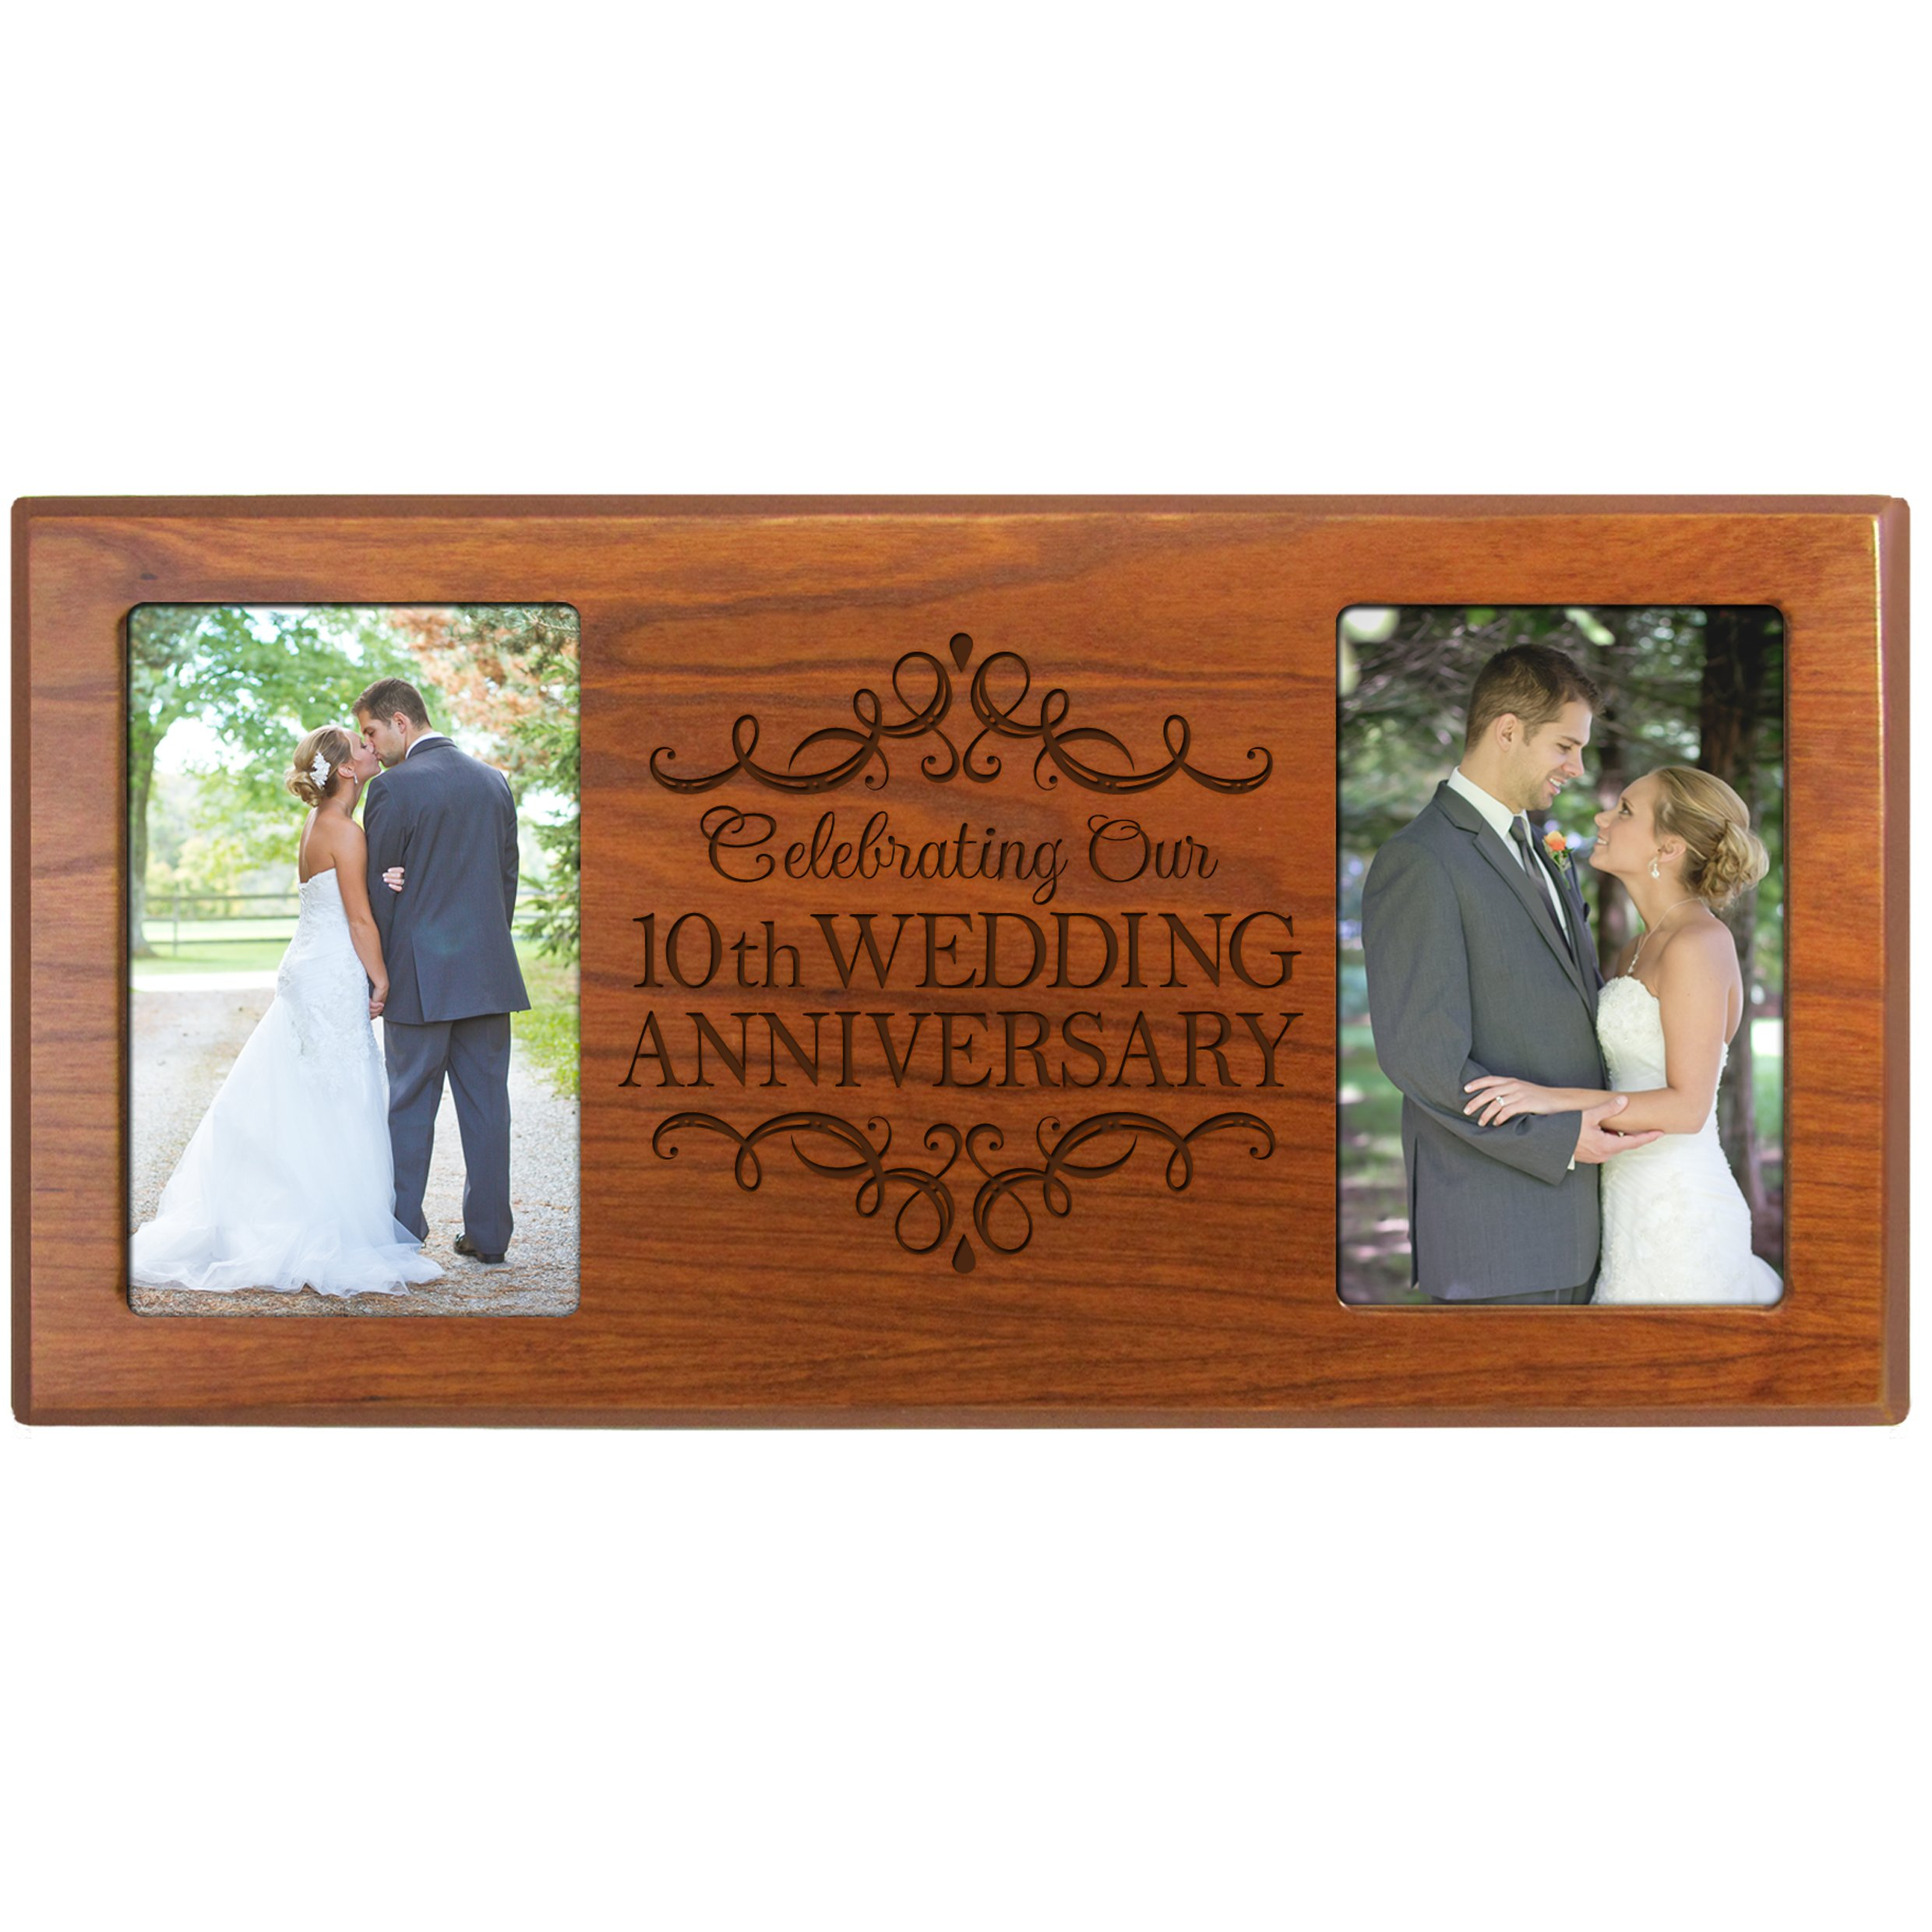 Buy 10th Wedding Anniversary Picture Frame Gift For Couple10th